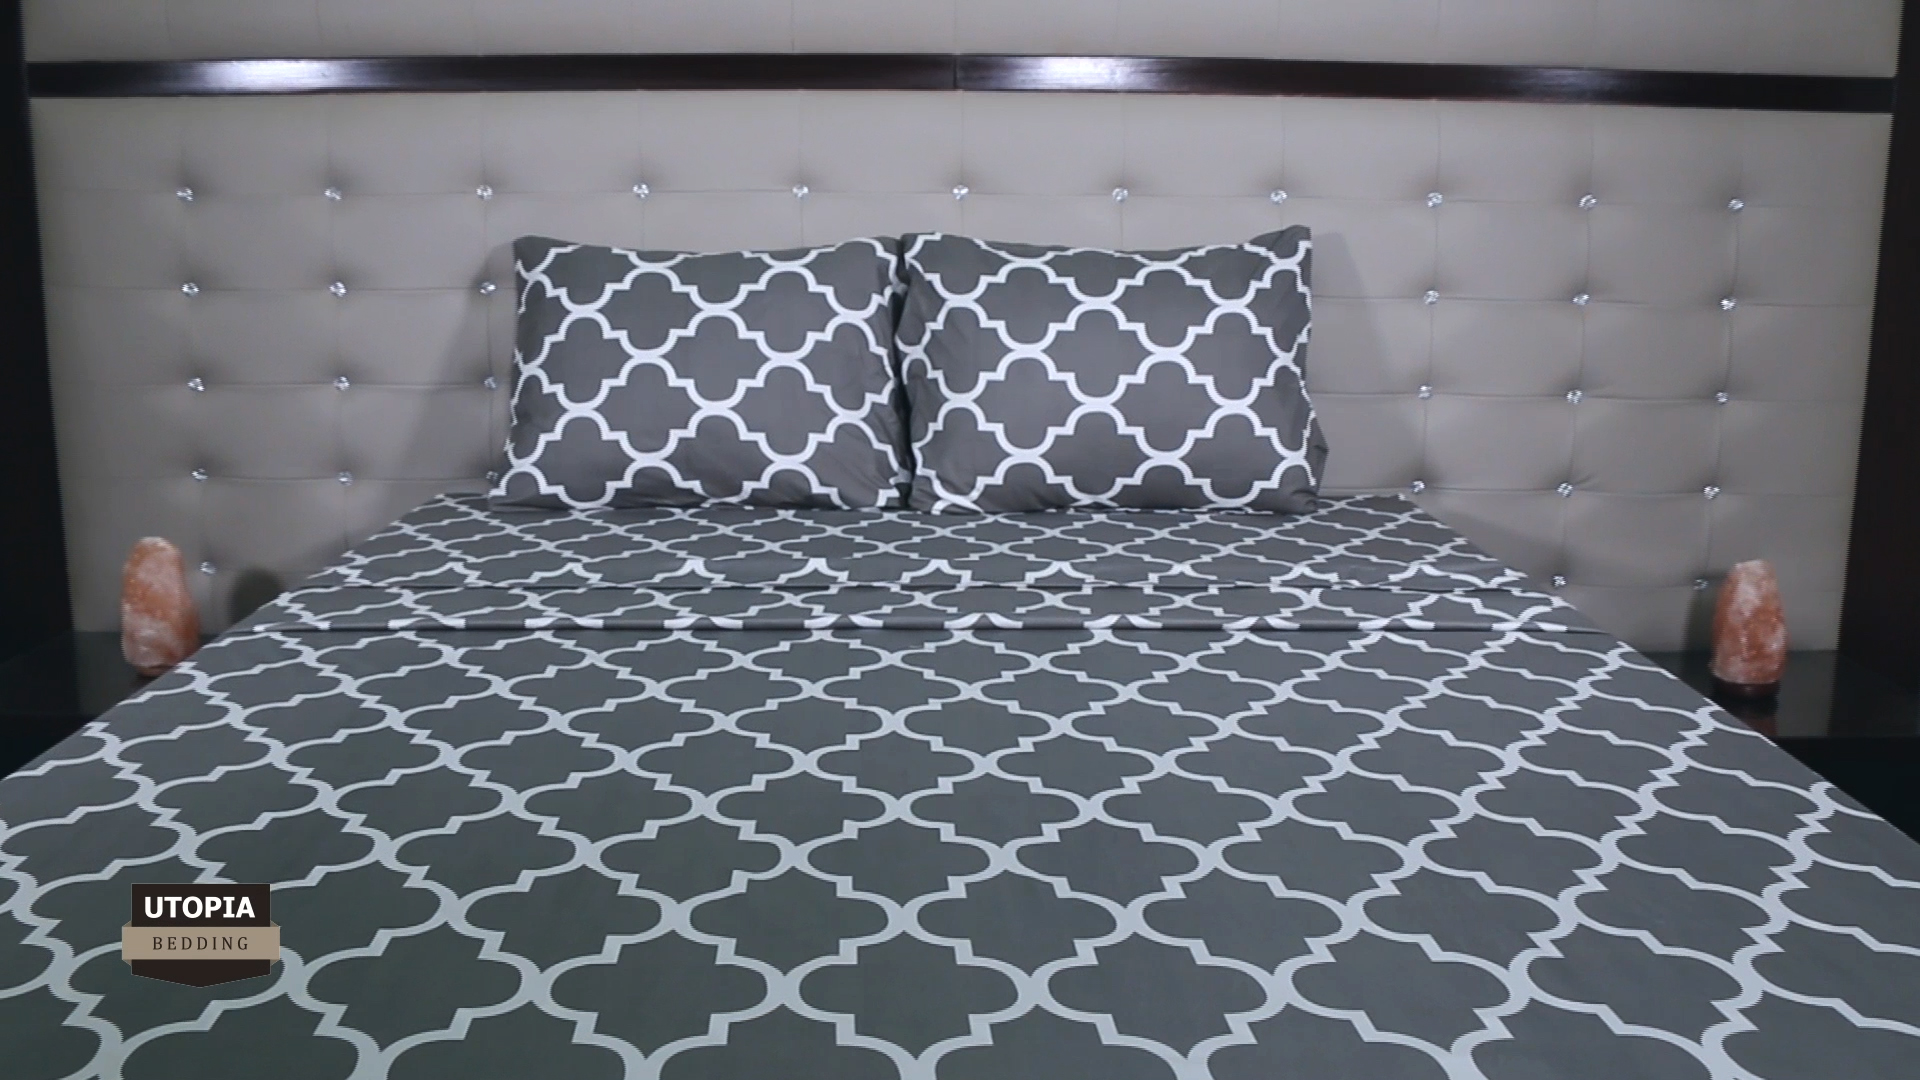 Utopia Bedding Printed Bed Sheet Set - 1 Fitted Sheet, 1 Flat Sheet and 2 Pillowcases - Soft Brushed Microfiber Fabric - Shrinkage and Fade Resistant (Queen, Navy Quatrefoil with White Pattern) - BED SHEET SET - Includes 1 flat sheet measuring 90 by 102 inches with a 4 inches self-hem; 1 fitted sheet measuring 60 by 80 inches with a 15 inches box for over sized bedding and 2 pillowcases measuring 20 by 30 inches each BRUSHED MICROFIBER - Polyester brushed microfiber fabric is twice as fine as silk that gives a soft feel and maximum comfort SOFT AND COMFORTABLE - Soft and comfortable material gives you the best of sleeping experience - sheet-sets, bedroom-sheets-comforters, bedroom - 91HtF1d3IbL -